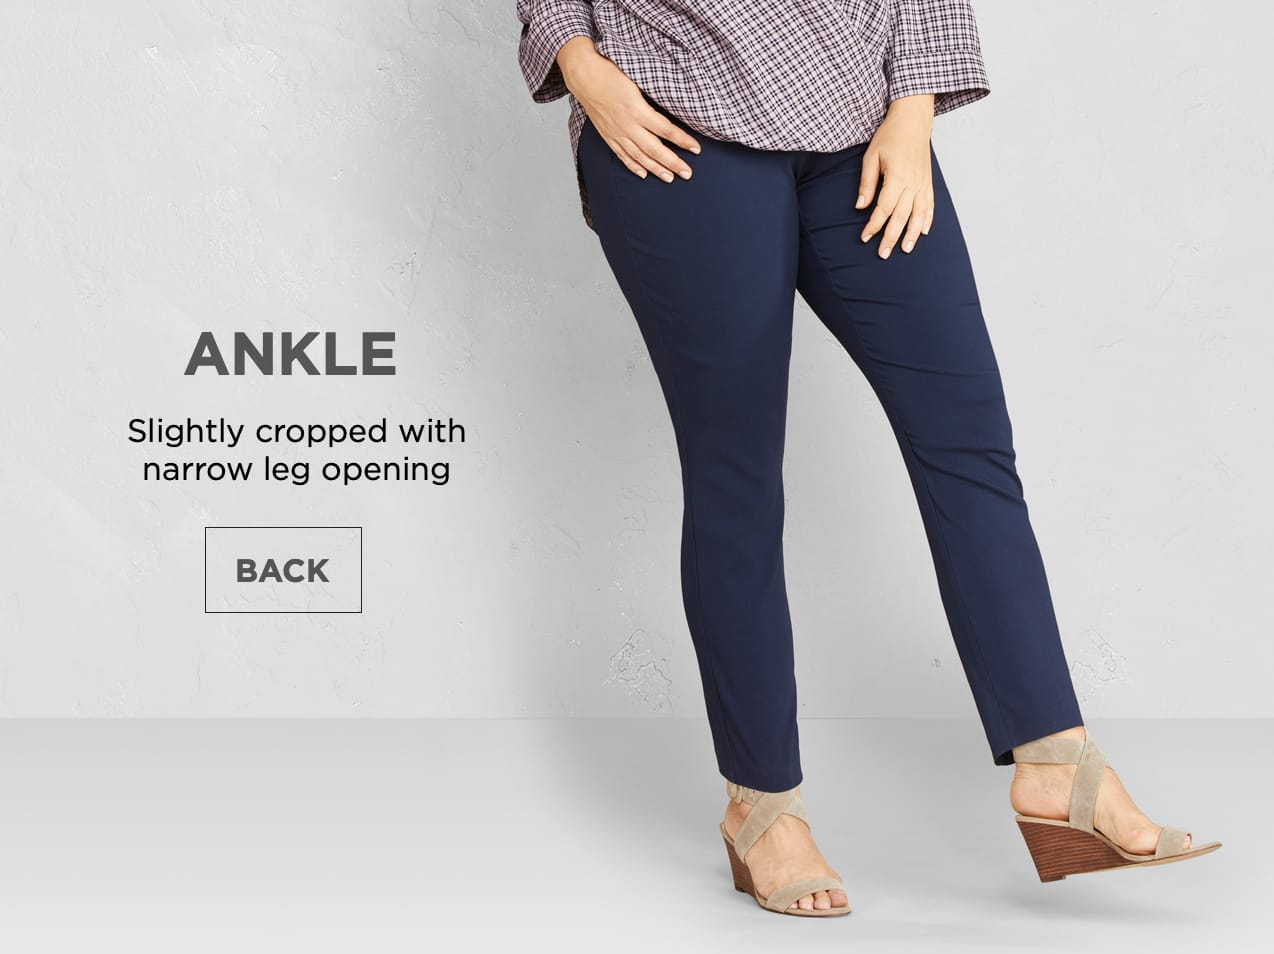 Ankle: Slightly cropped with a narrow leg opening.